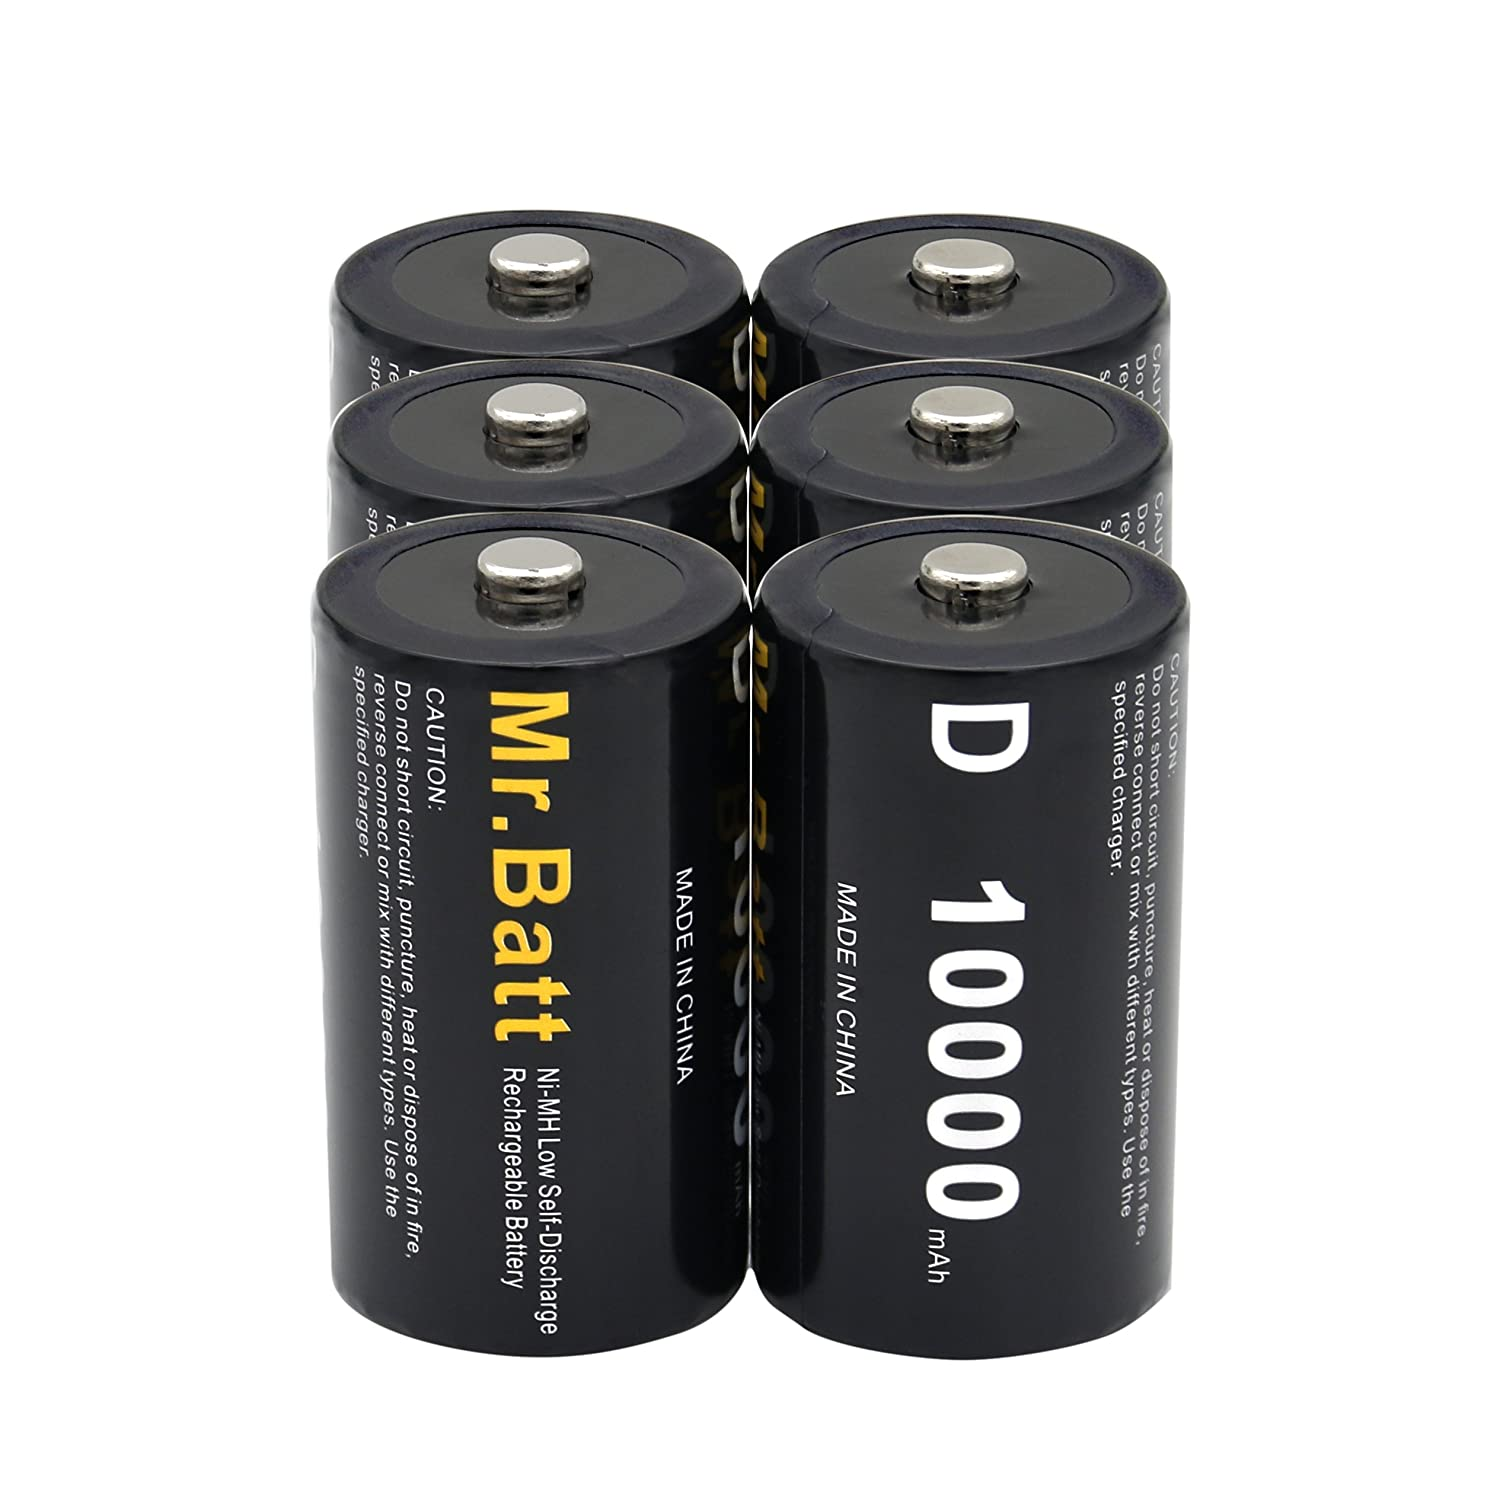 D Batteries Rechargeable (Pack of 6) NiMh D Cell 1.2V 10000mAh Mr.Batt 4336300111